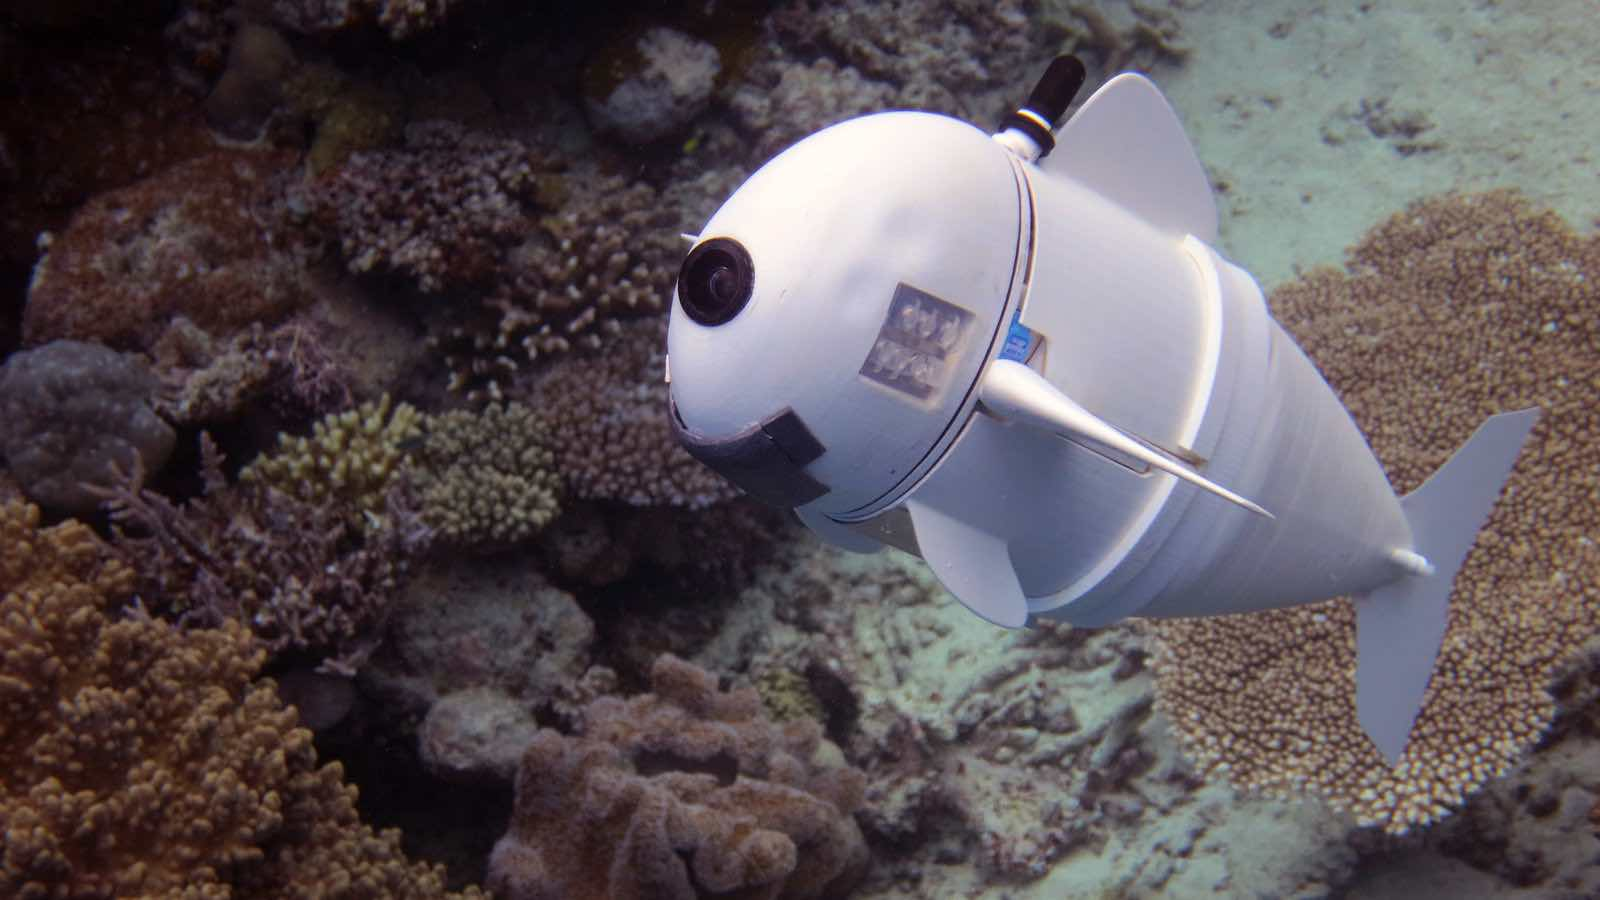 MIT's robot fish is eerily realistic (Watch)